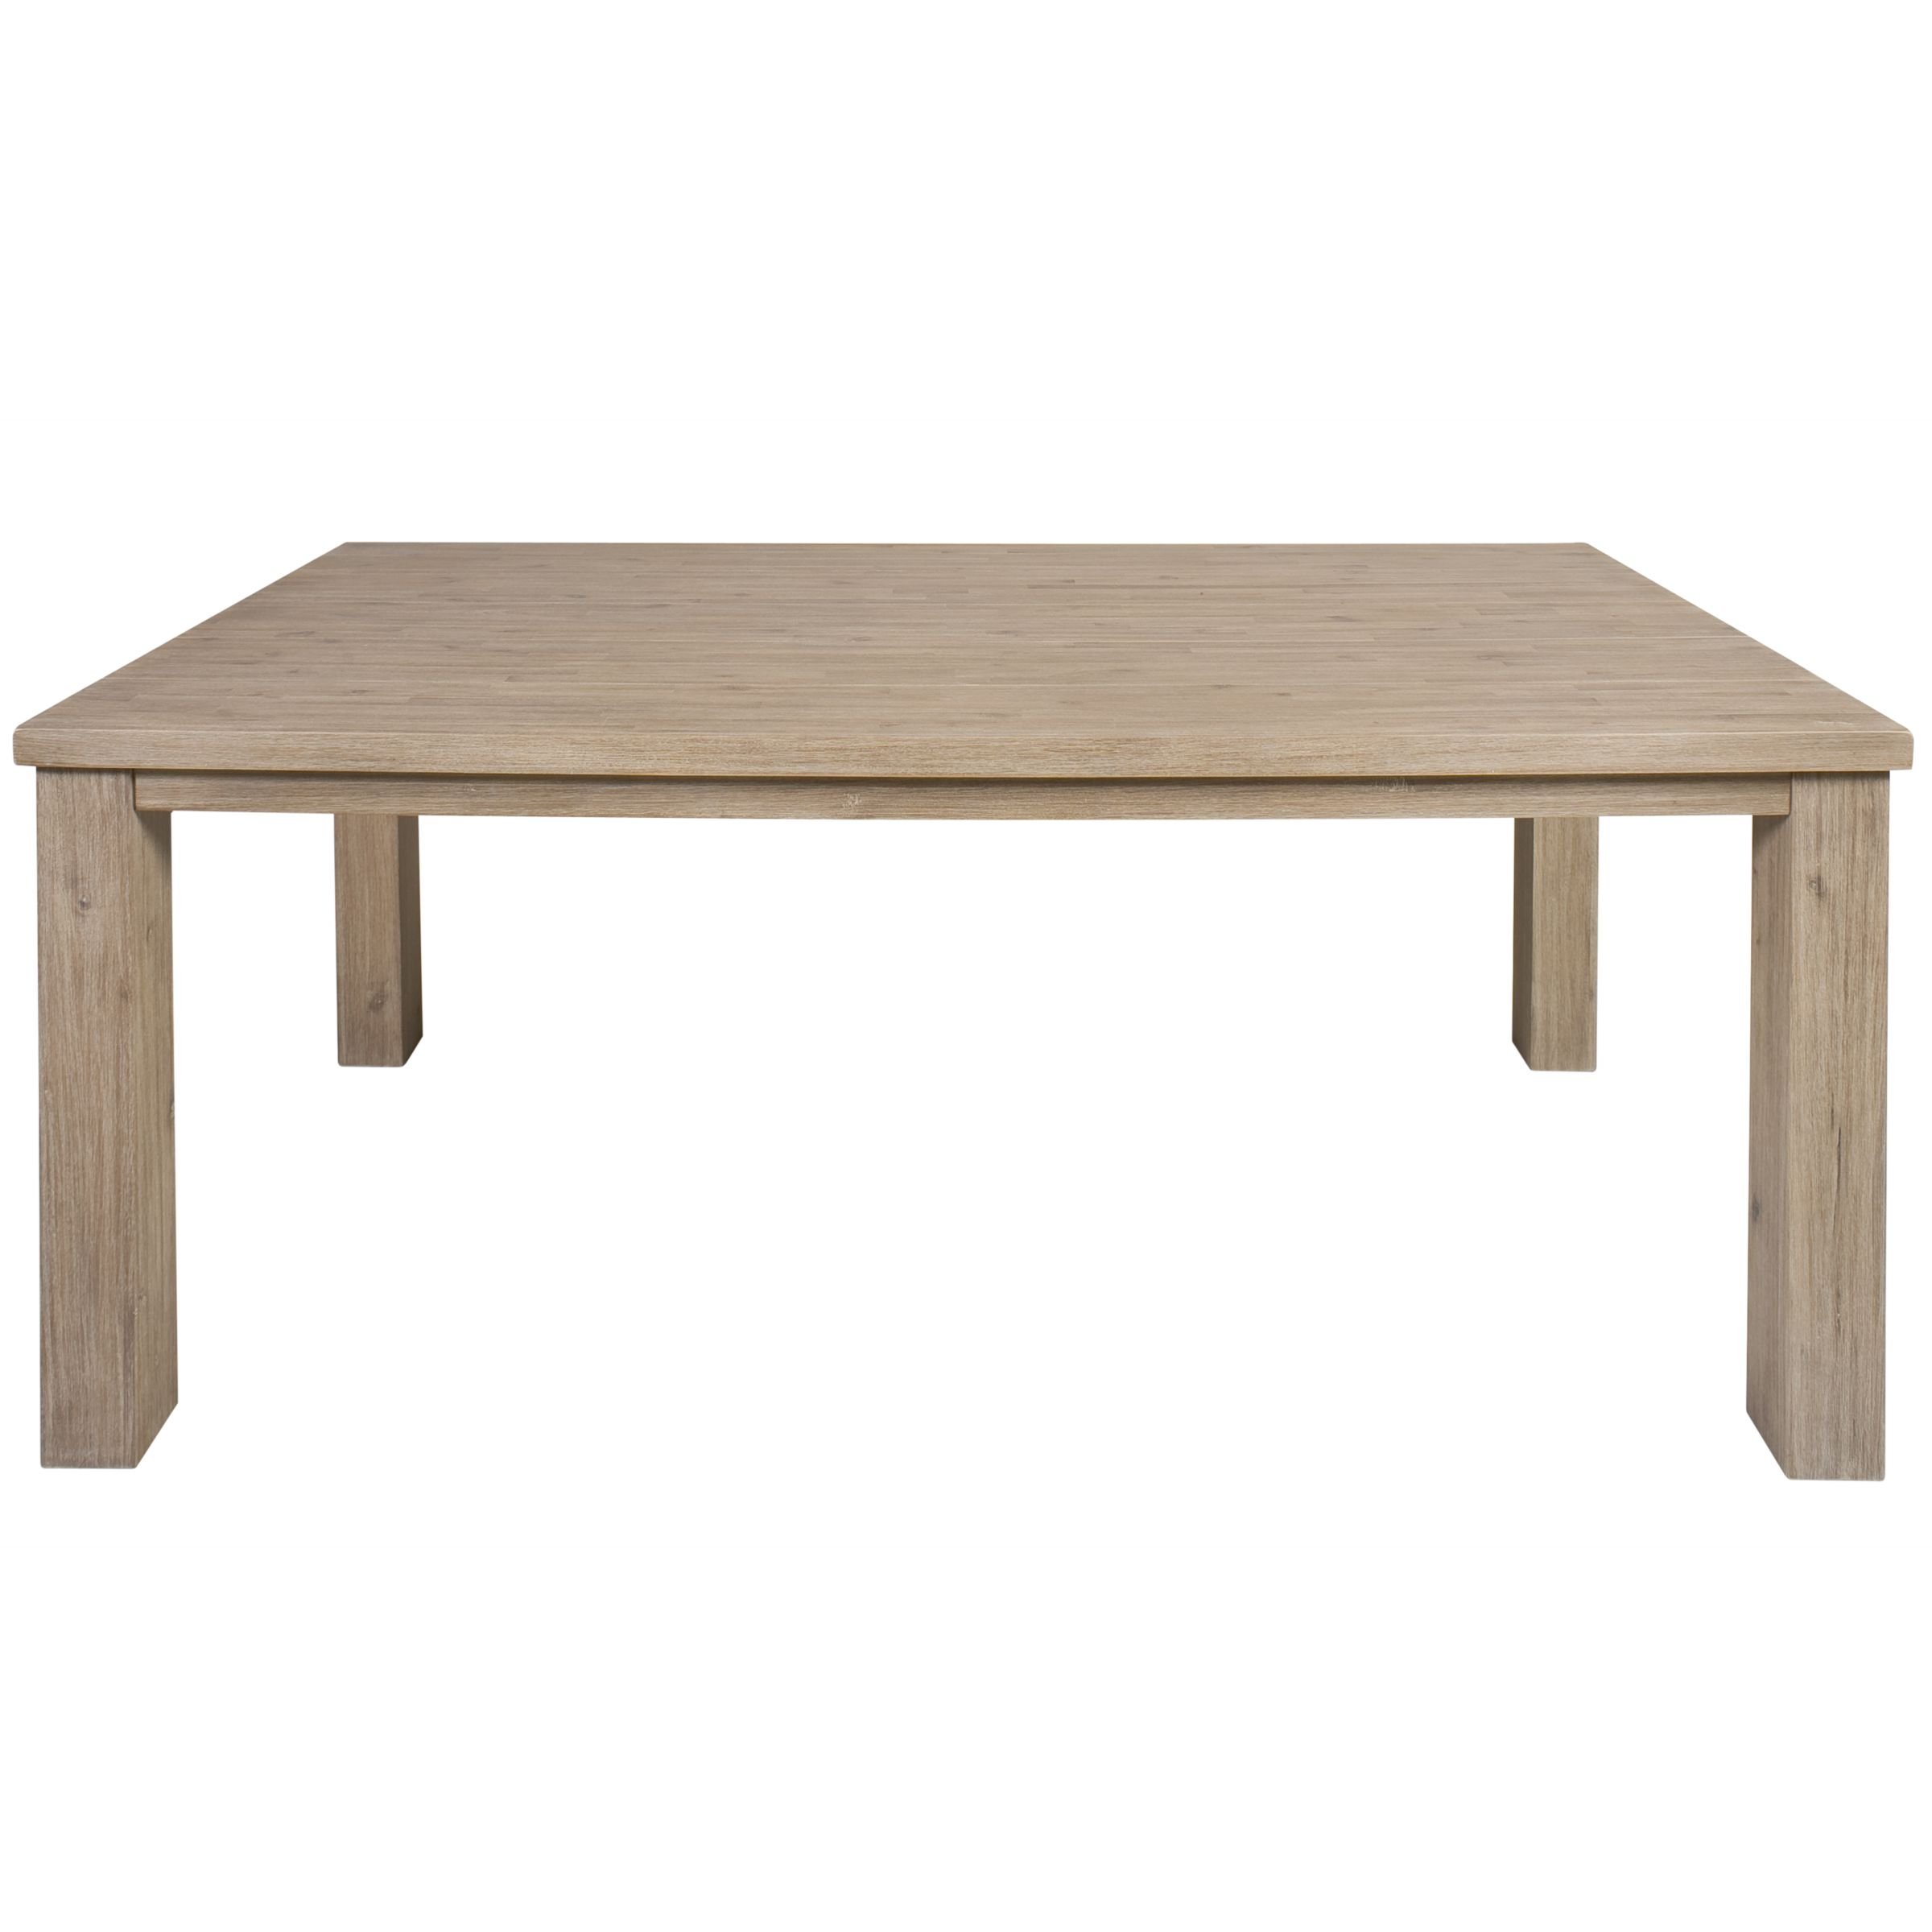 john lewis dining tables : 231019174 from www.comparestoreprices.co.uk size 1600 x 1600 jpeg 125kB